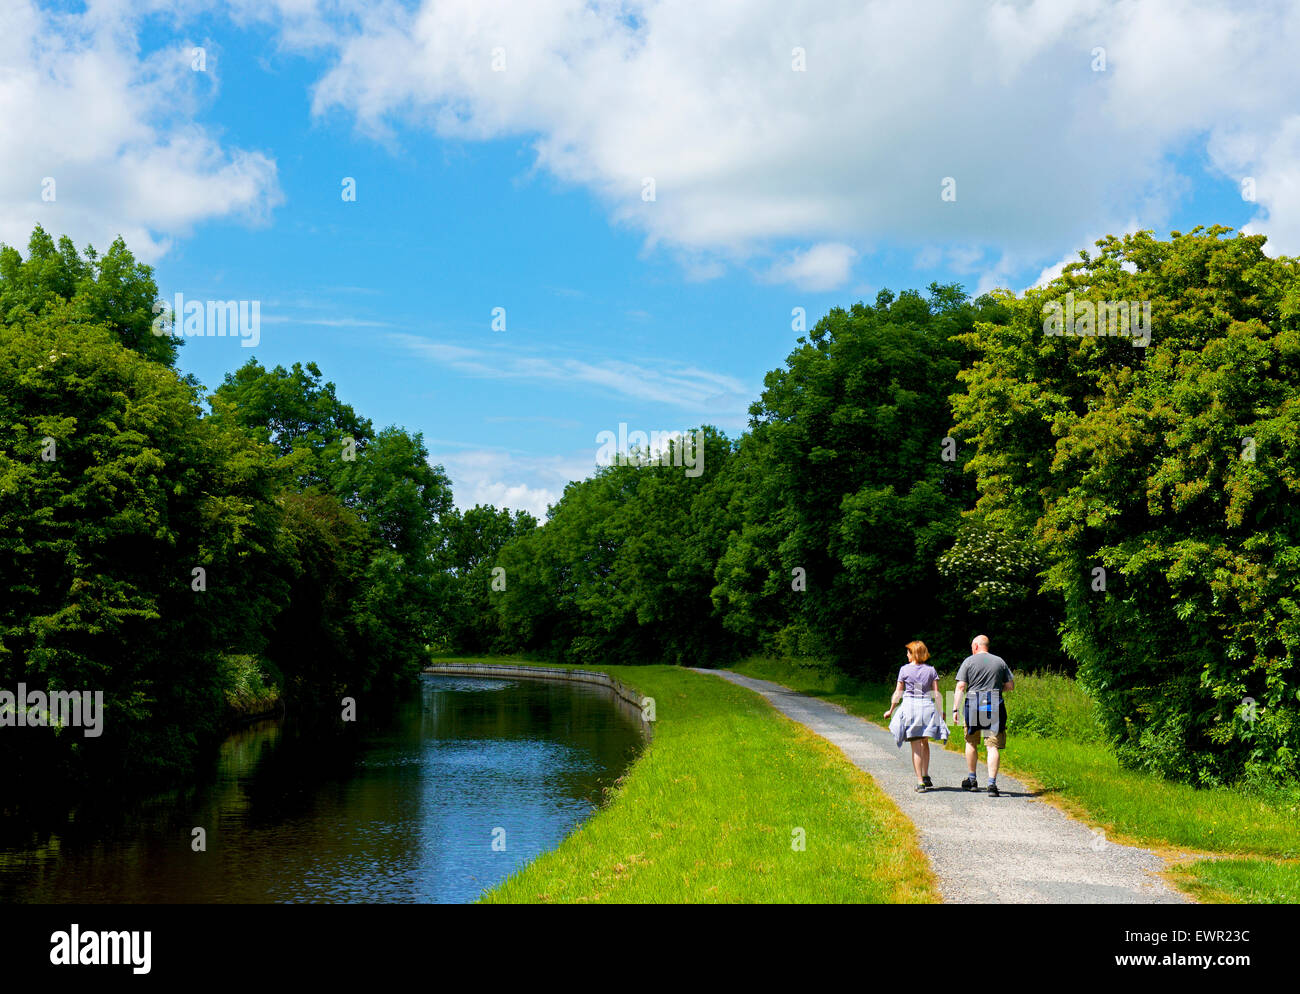 Couple walking on the towpath of the Leeds and Liverpool Canal near Barnoldswick, Lancashire, England UK - Stock Image